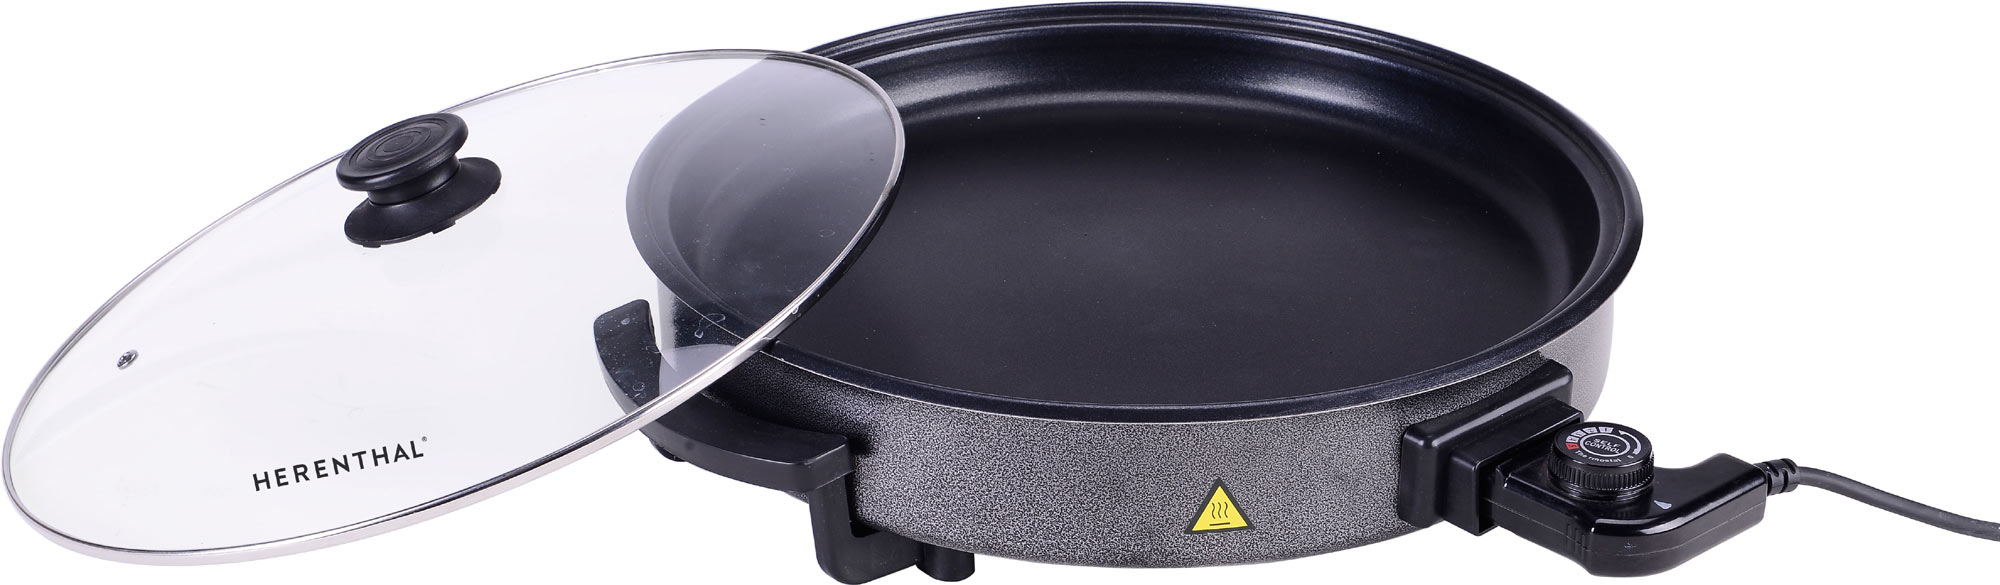 Herenthal HT-PP-40.5 Τεπανγιάκι 40εκ. Party Pan